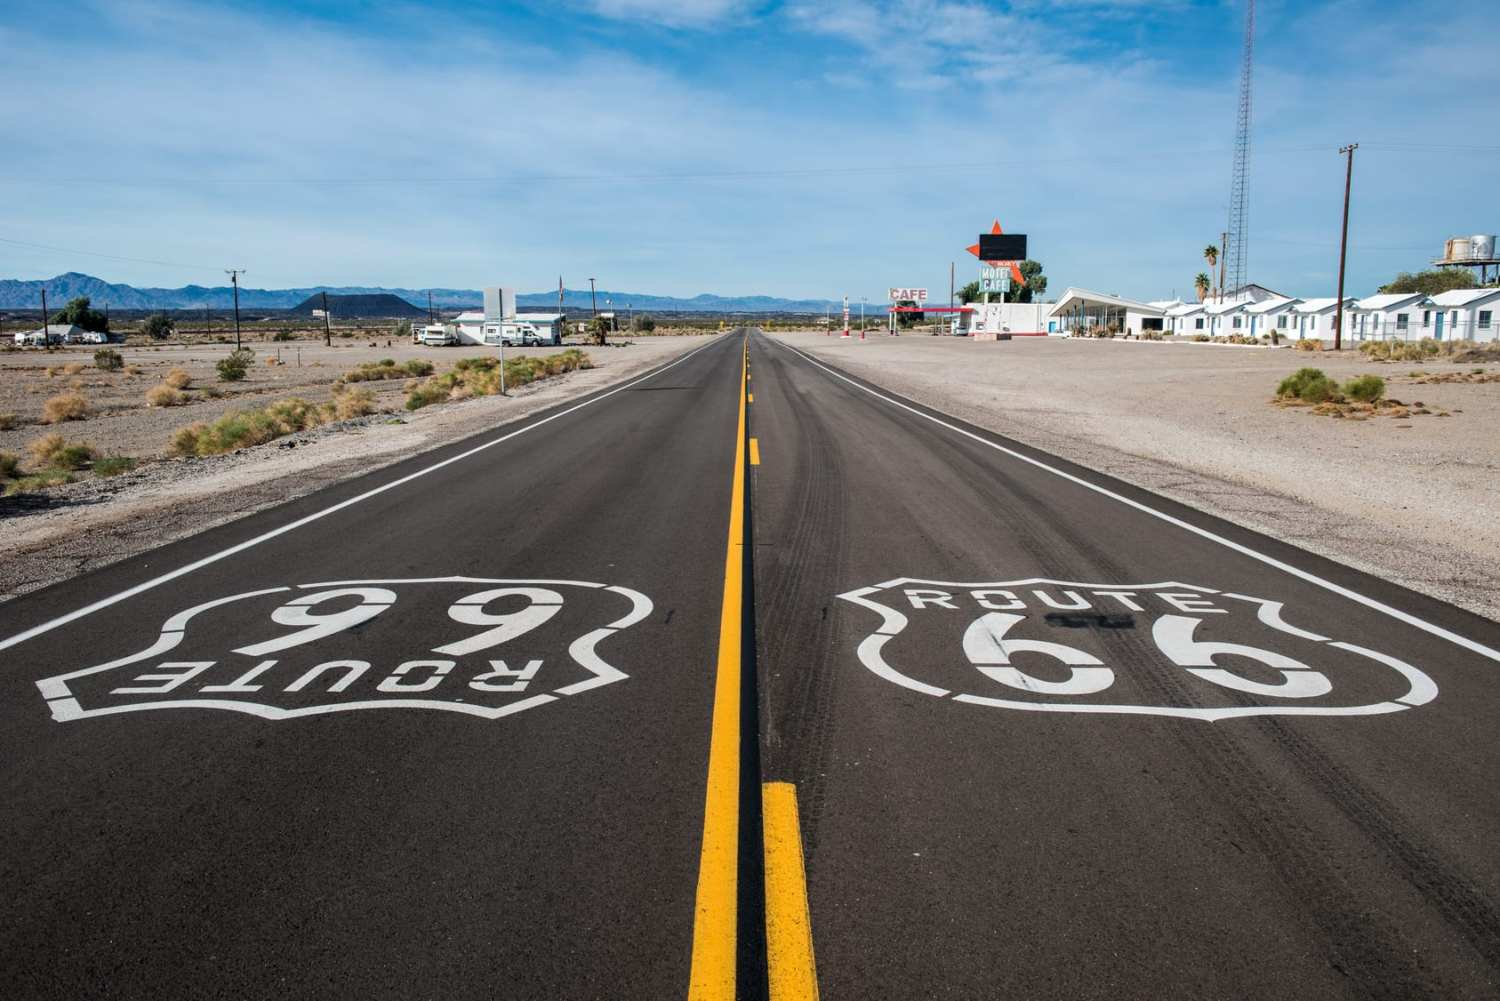 historic Route 66 usa road trips